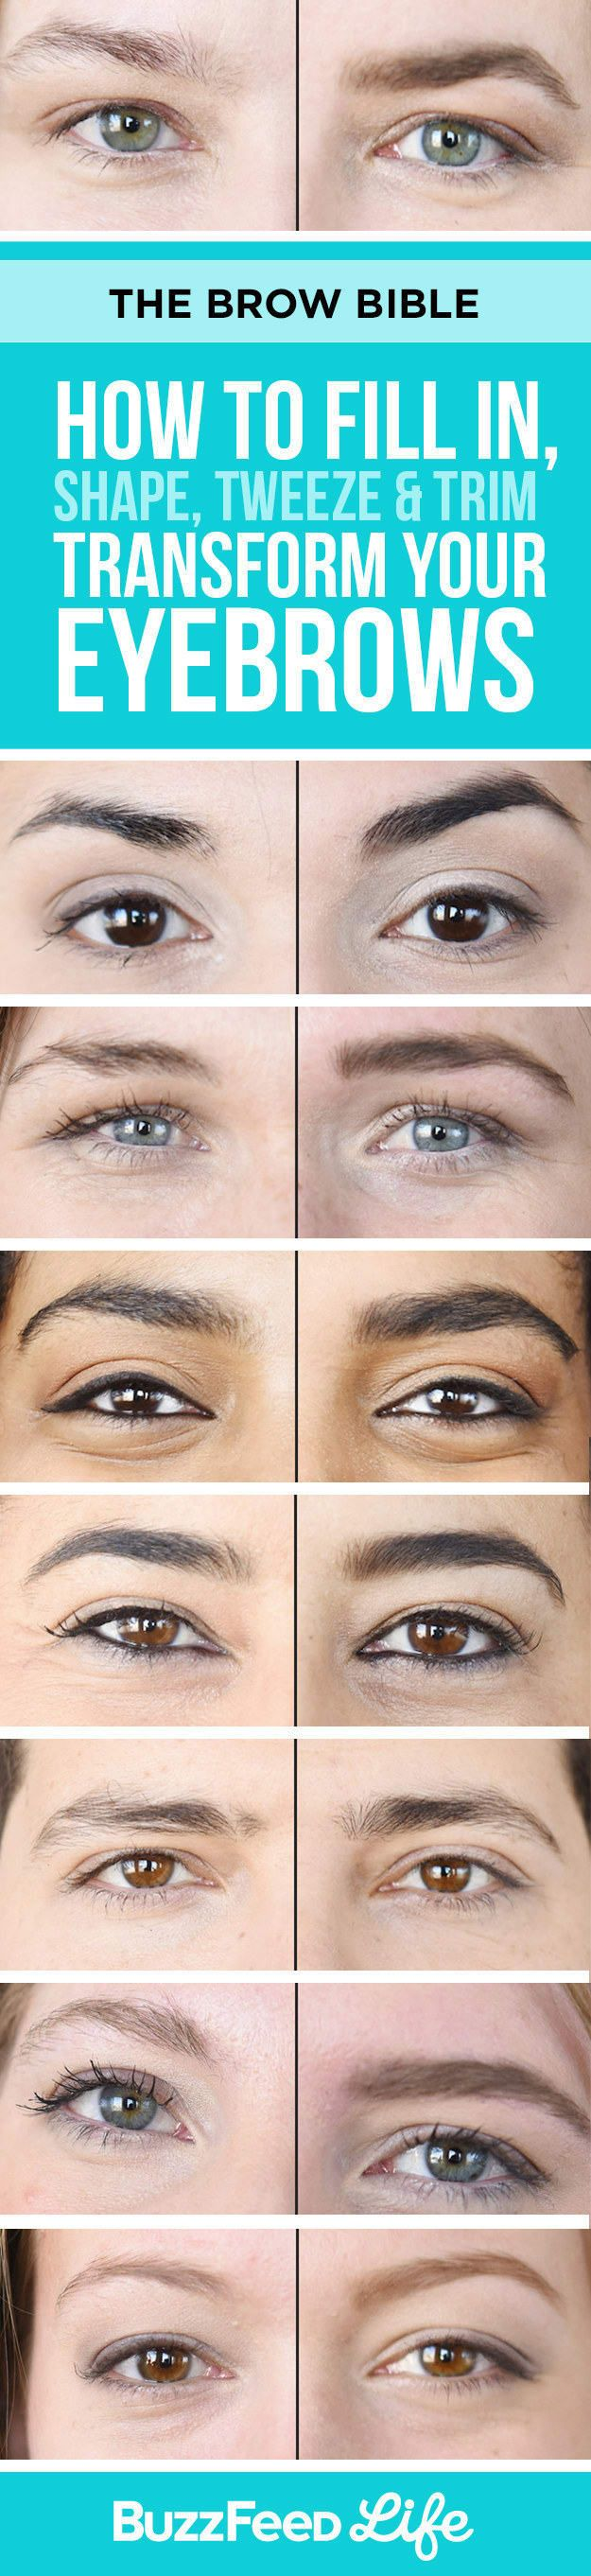 How To Fill In, Shape, Tweeze, Trim, And Transform Your Eyebrows